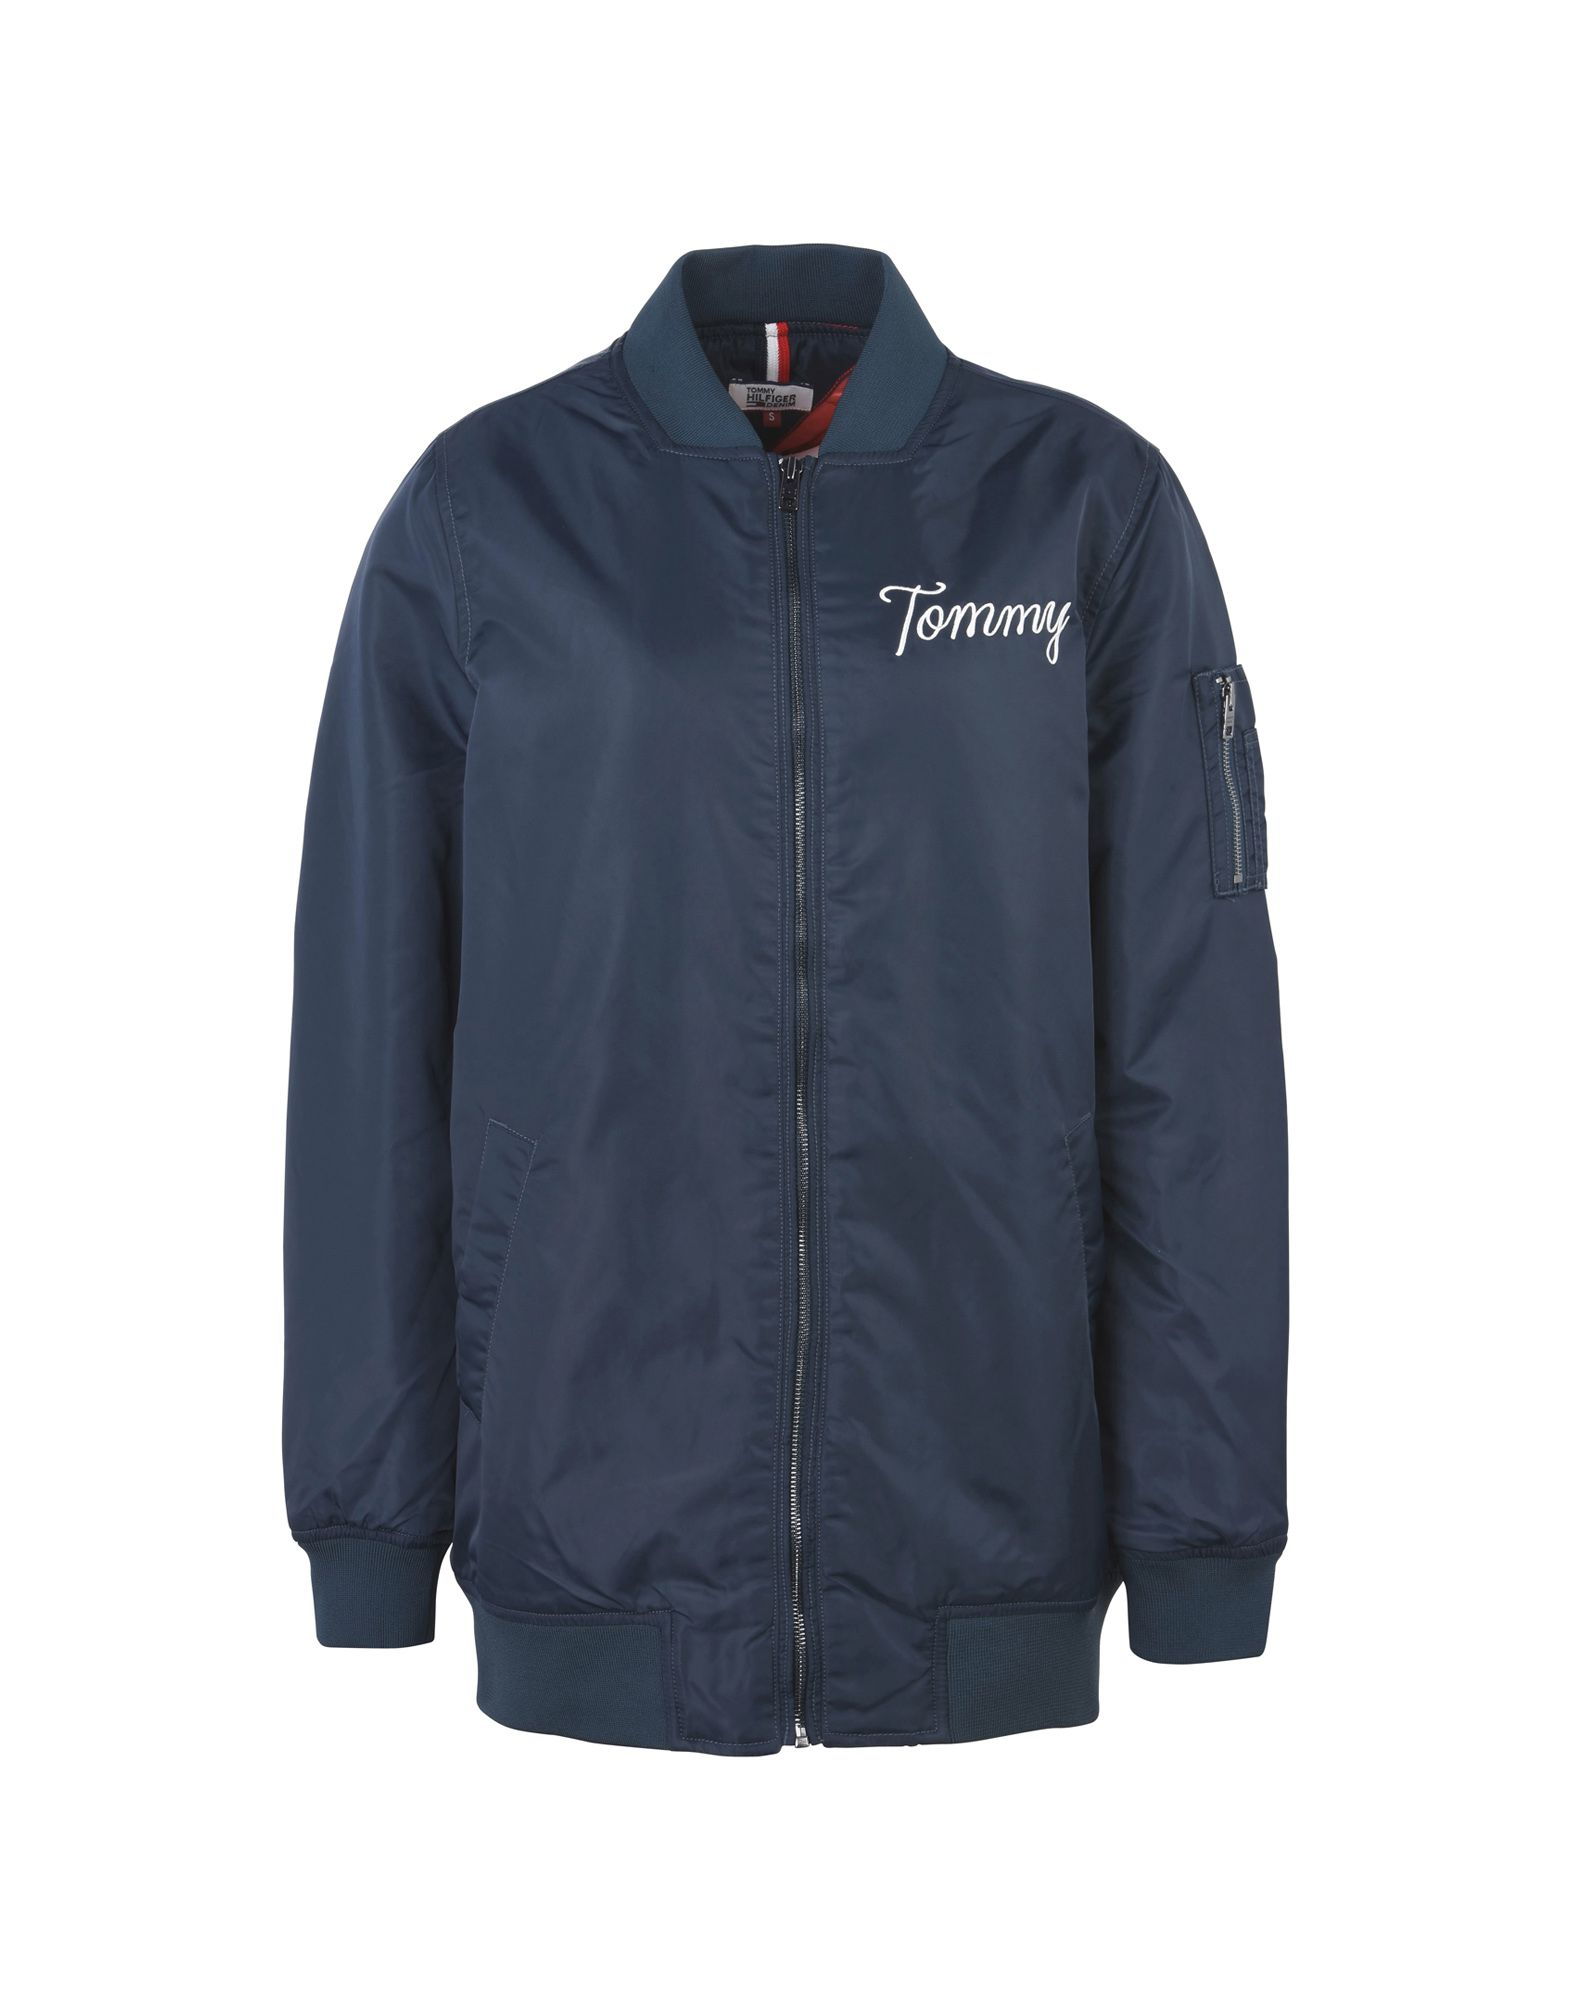 TOMMY HILFIGER DENIM Куртка куртка утепленная tommy hilfiger denim tommy hilfiger denim to013ewufk01